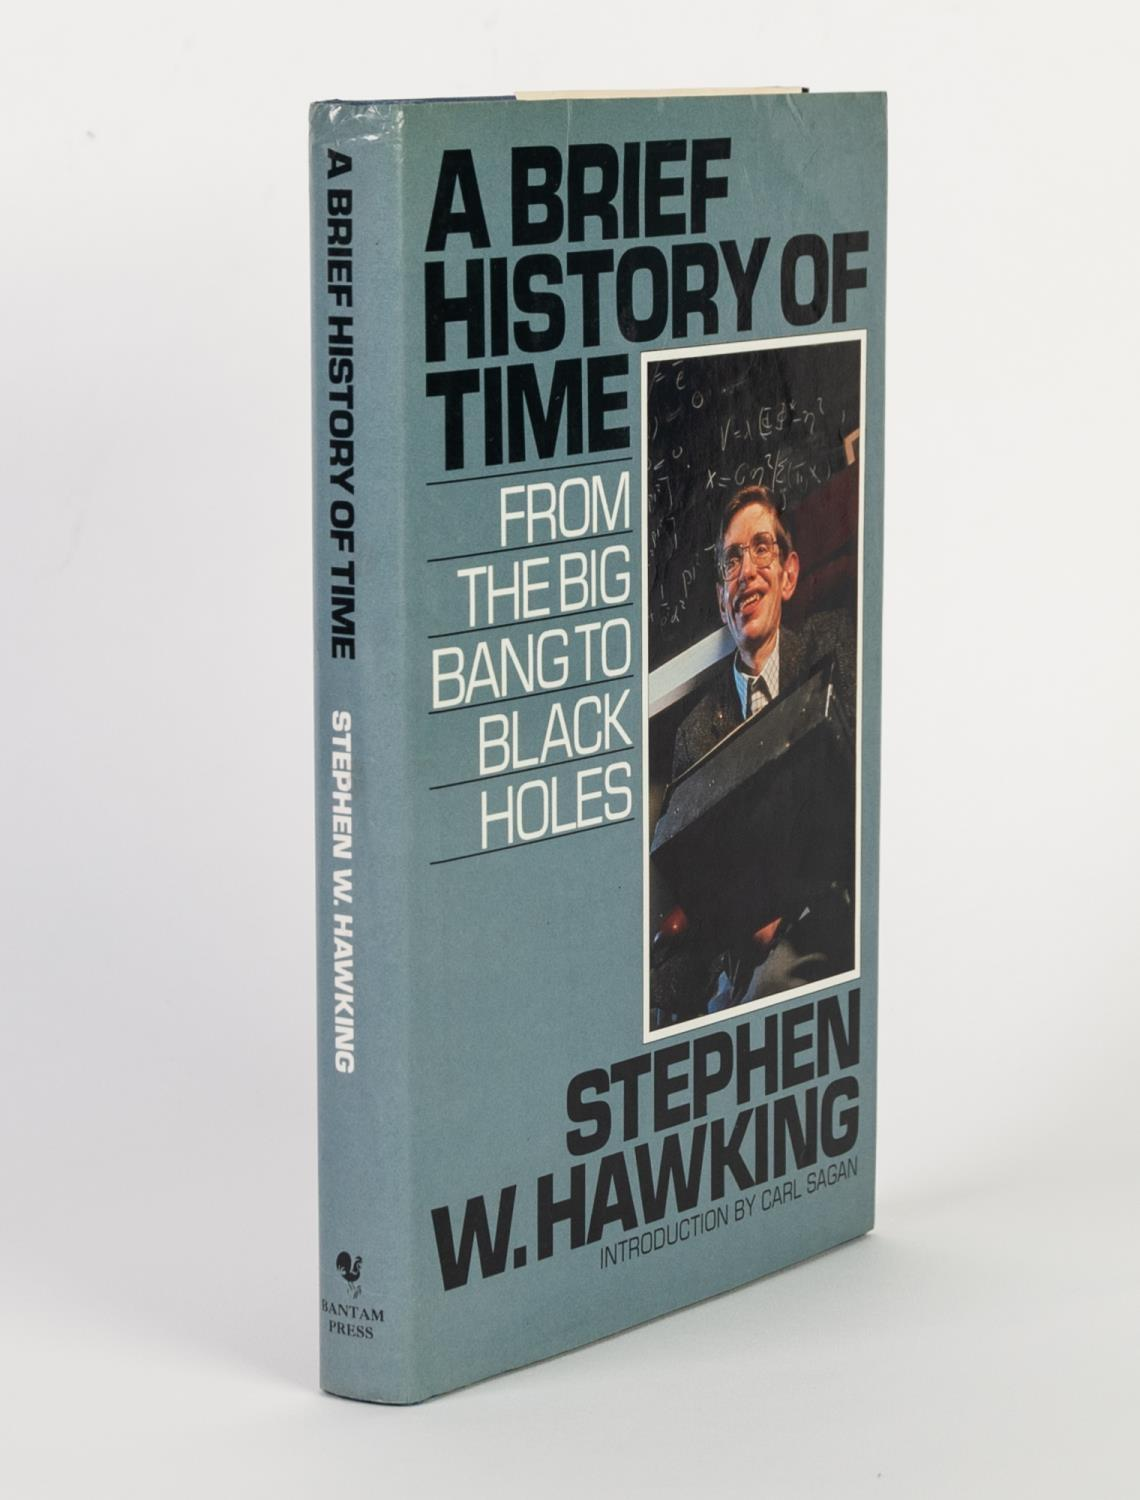 Lot 144 - STEPHEN W HAWKING - A BRIEF HISTORY OF TIME FROM THE BIG BANG TO THE BLACK HOLES, published Bantam